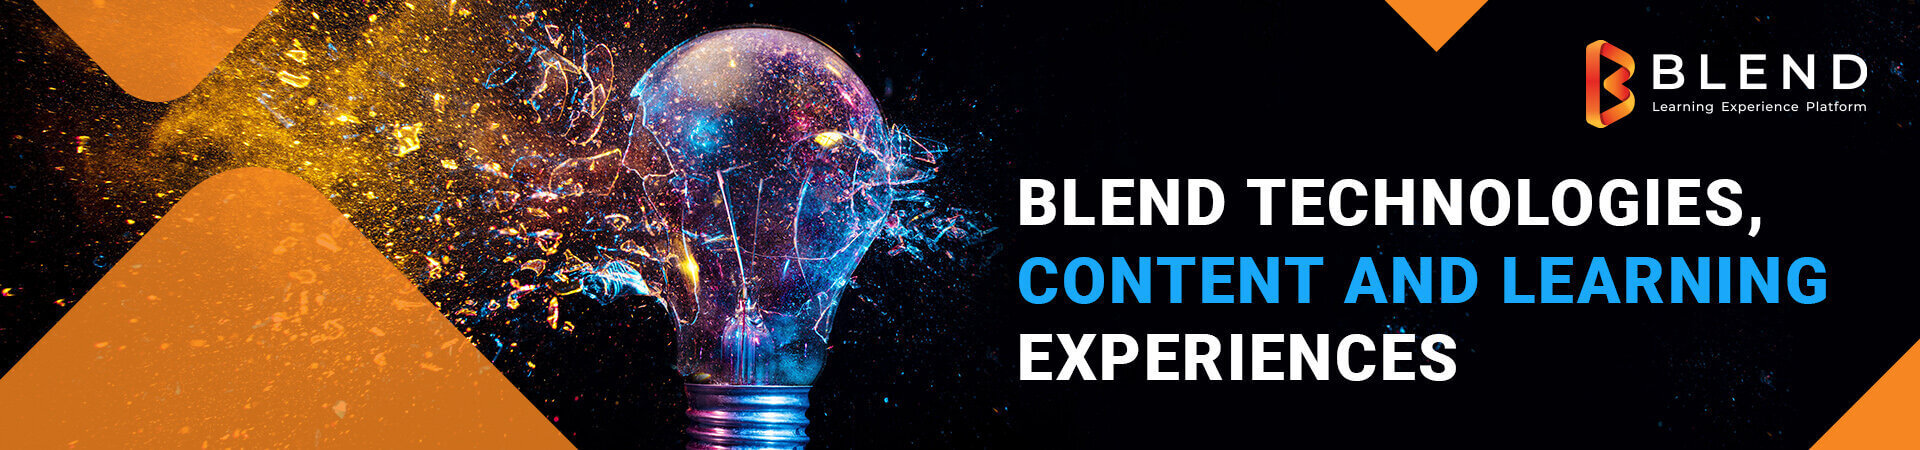 blend learning experiences